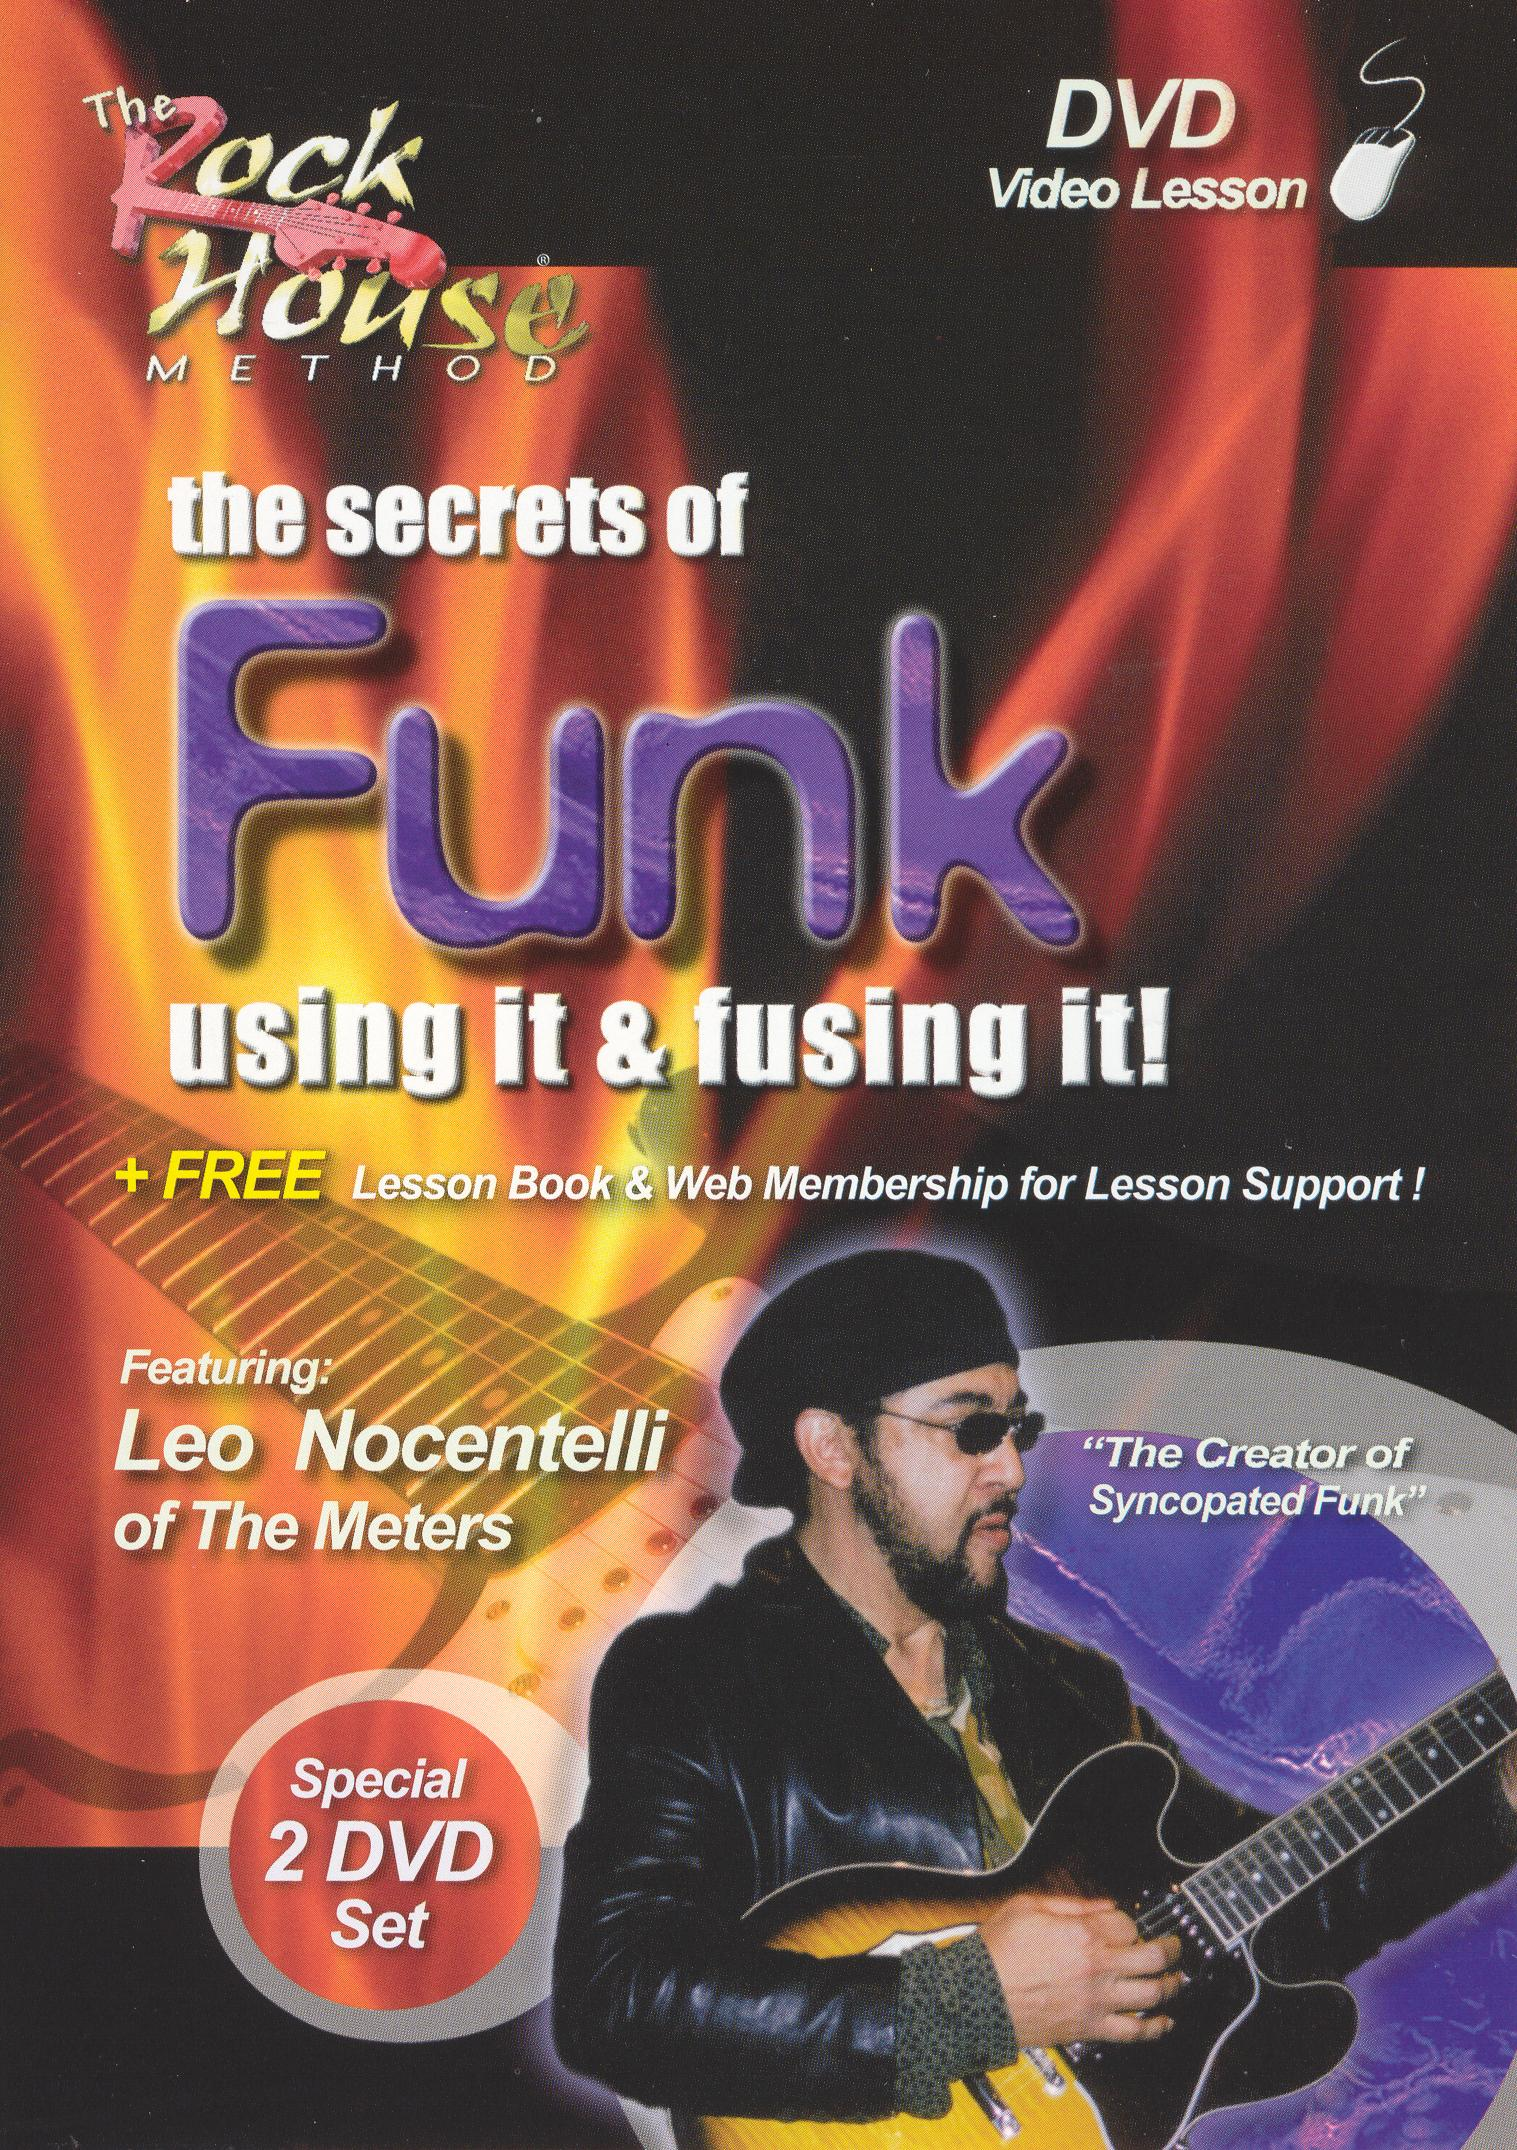 The Rock House Method: The Secrets of Funk Guitar